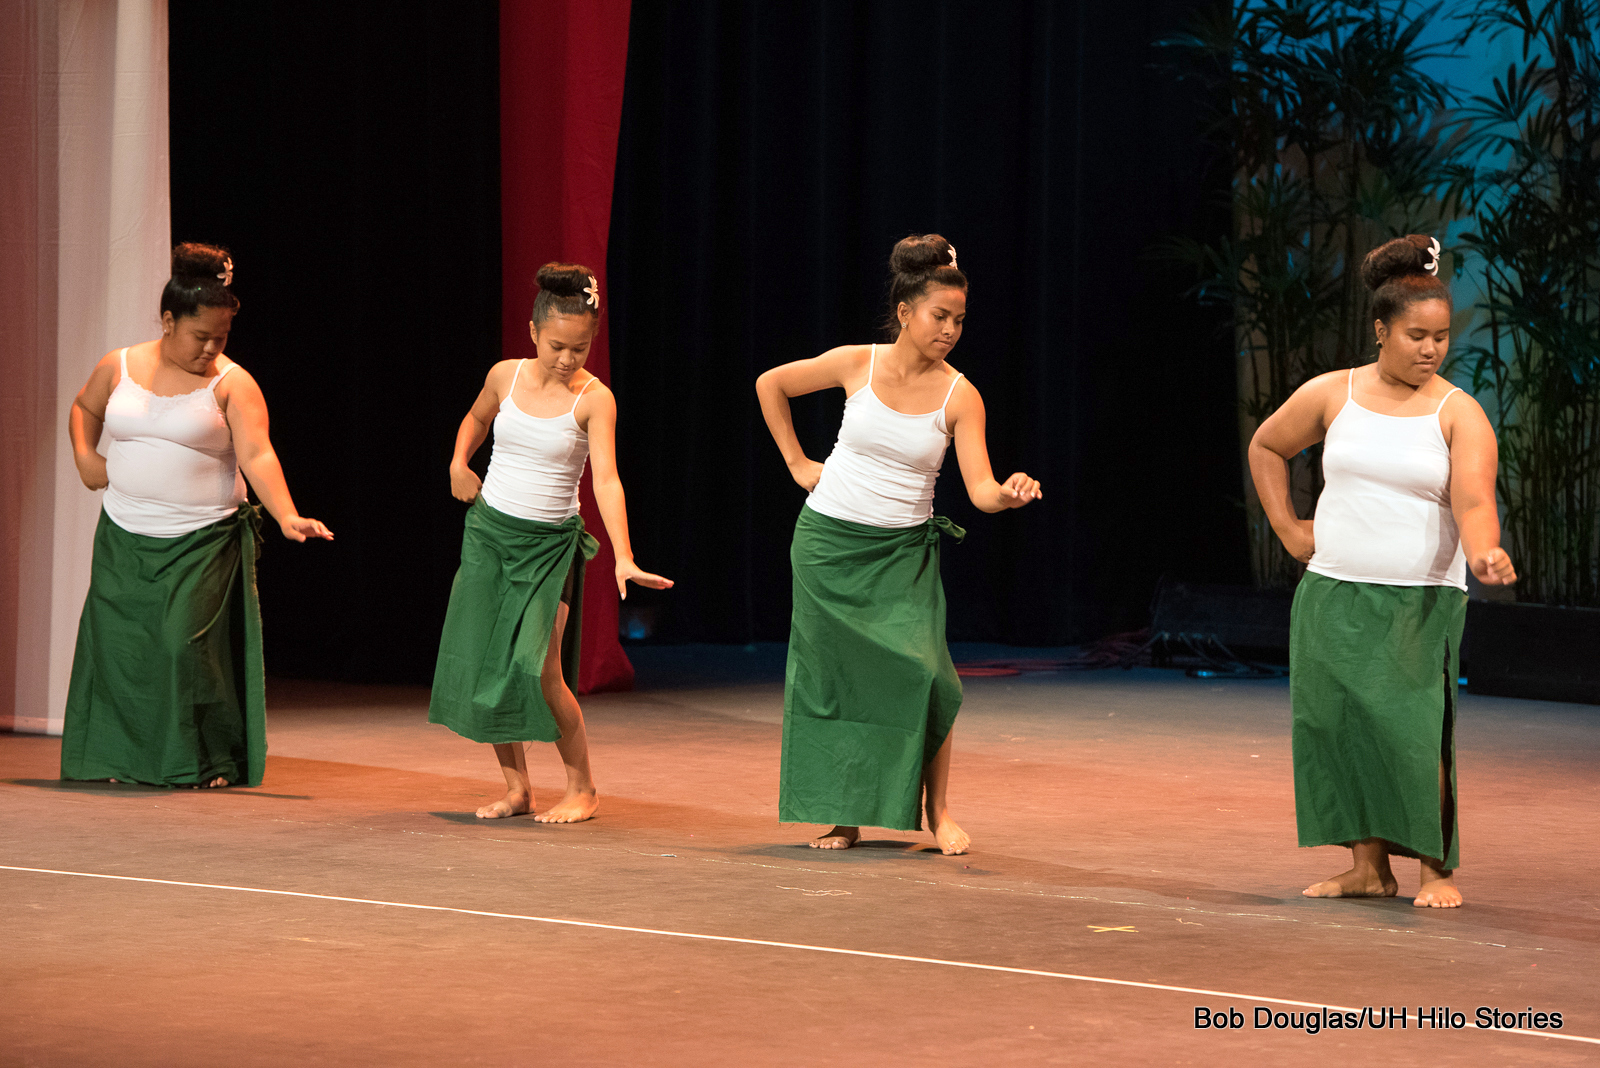 Women dancers in green and white.